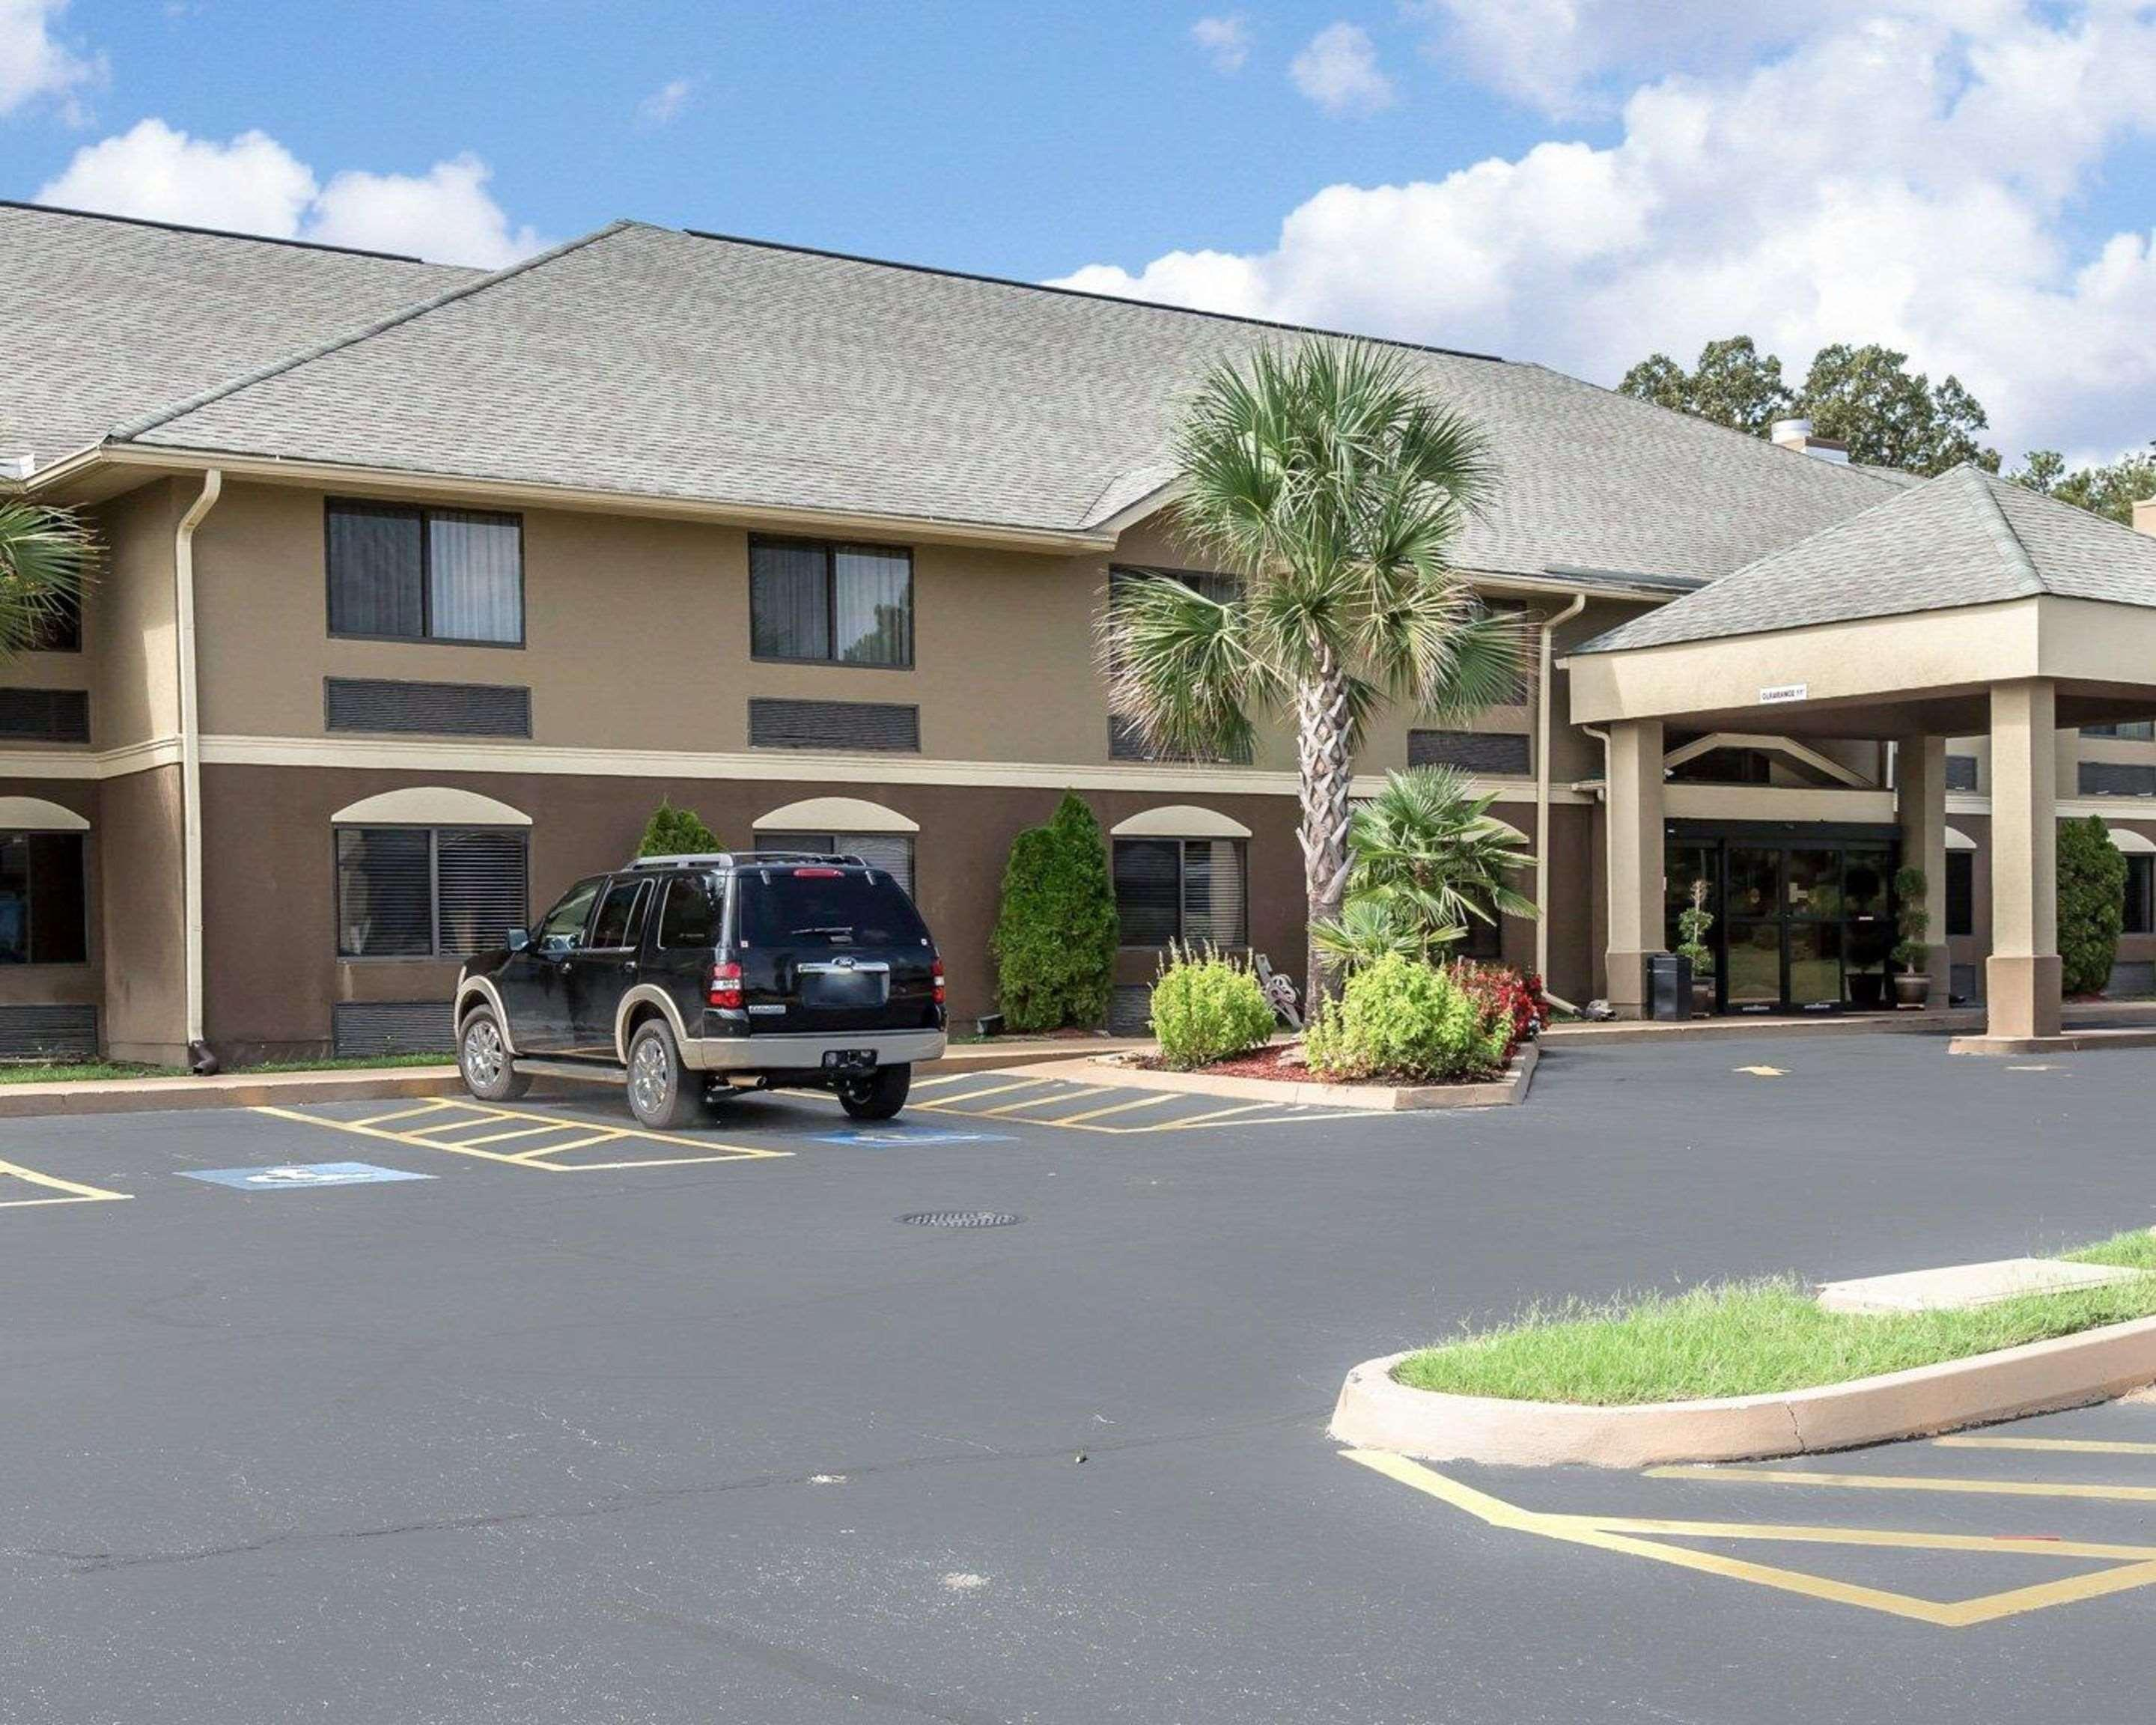 Comfort Inn & Suites at Robins Air Force Base, Houston